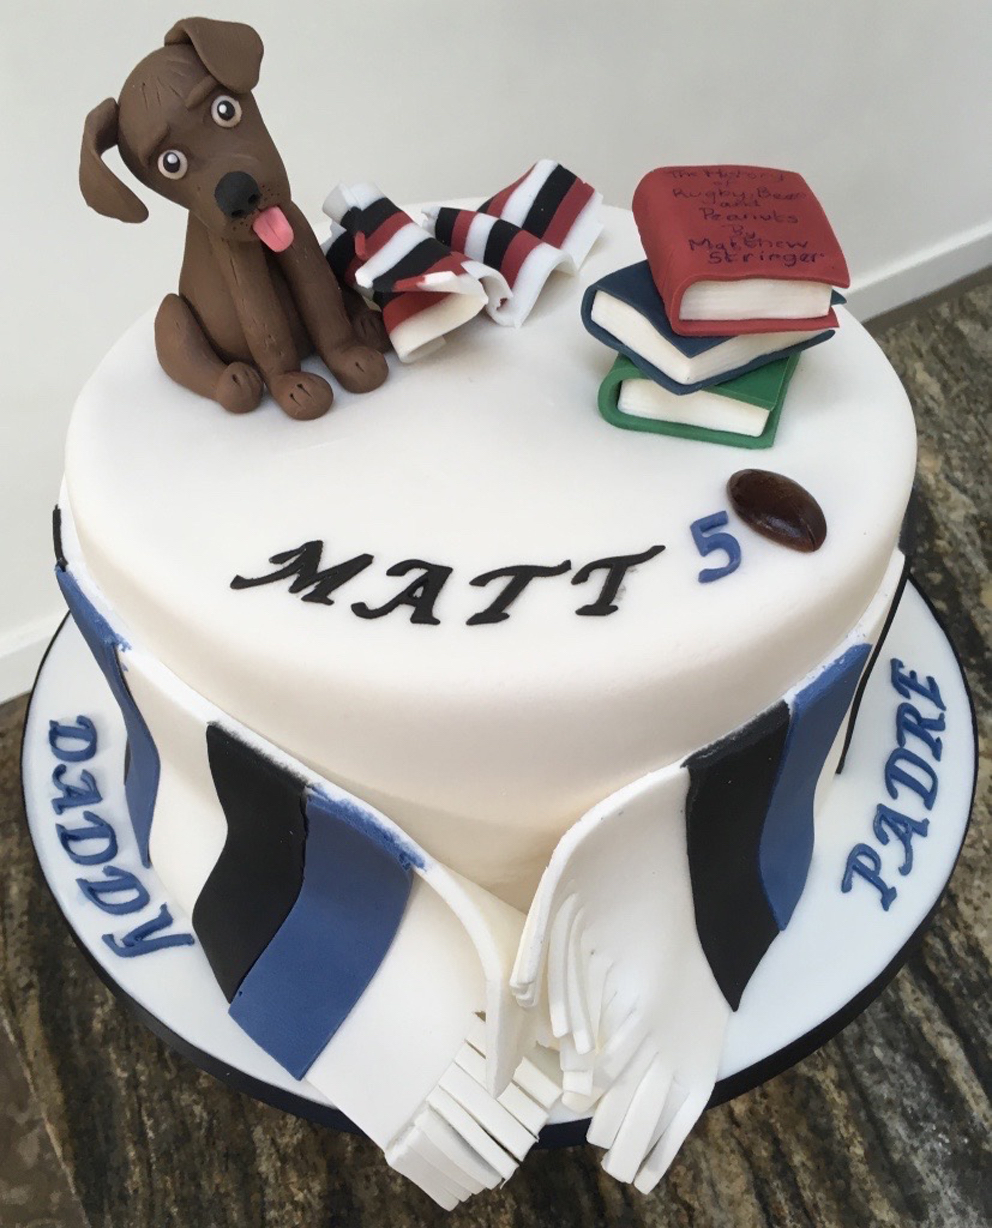 Custom made Celebration Cake - 8 inch / 20cm - from £75This cake would be priced at £85